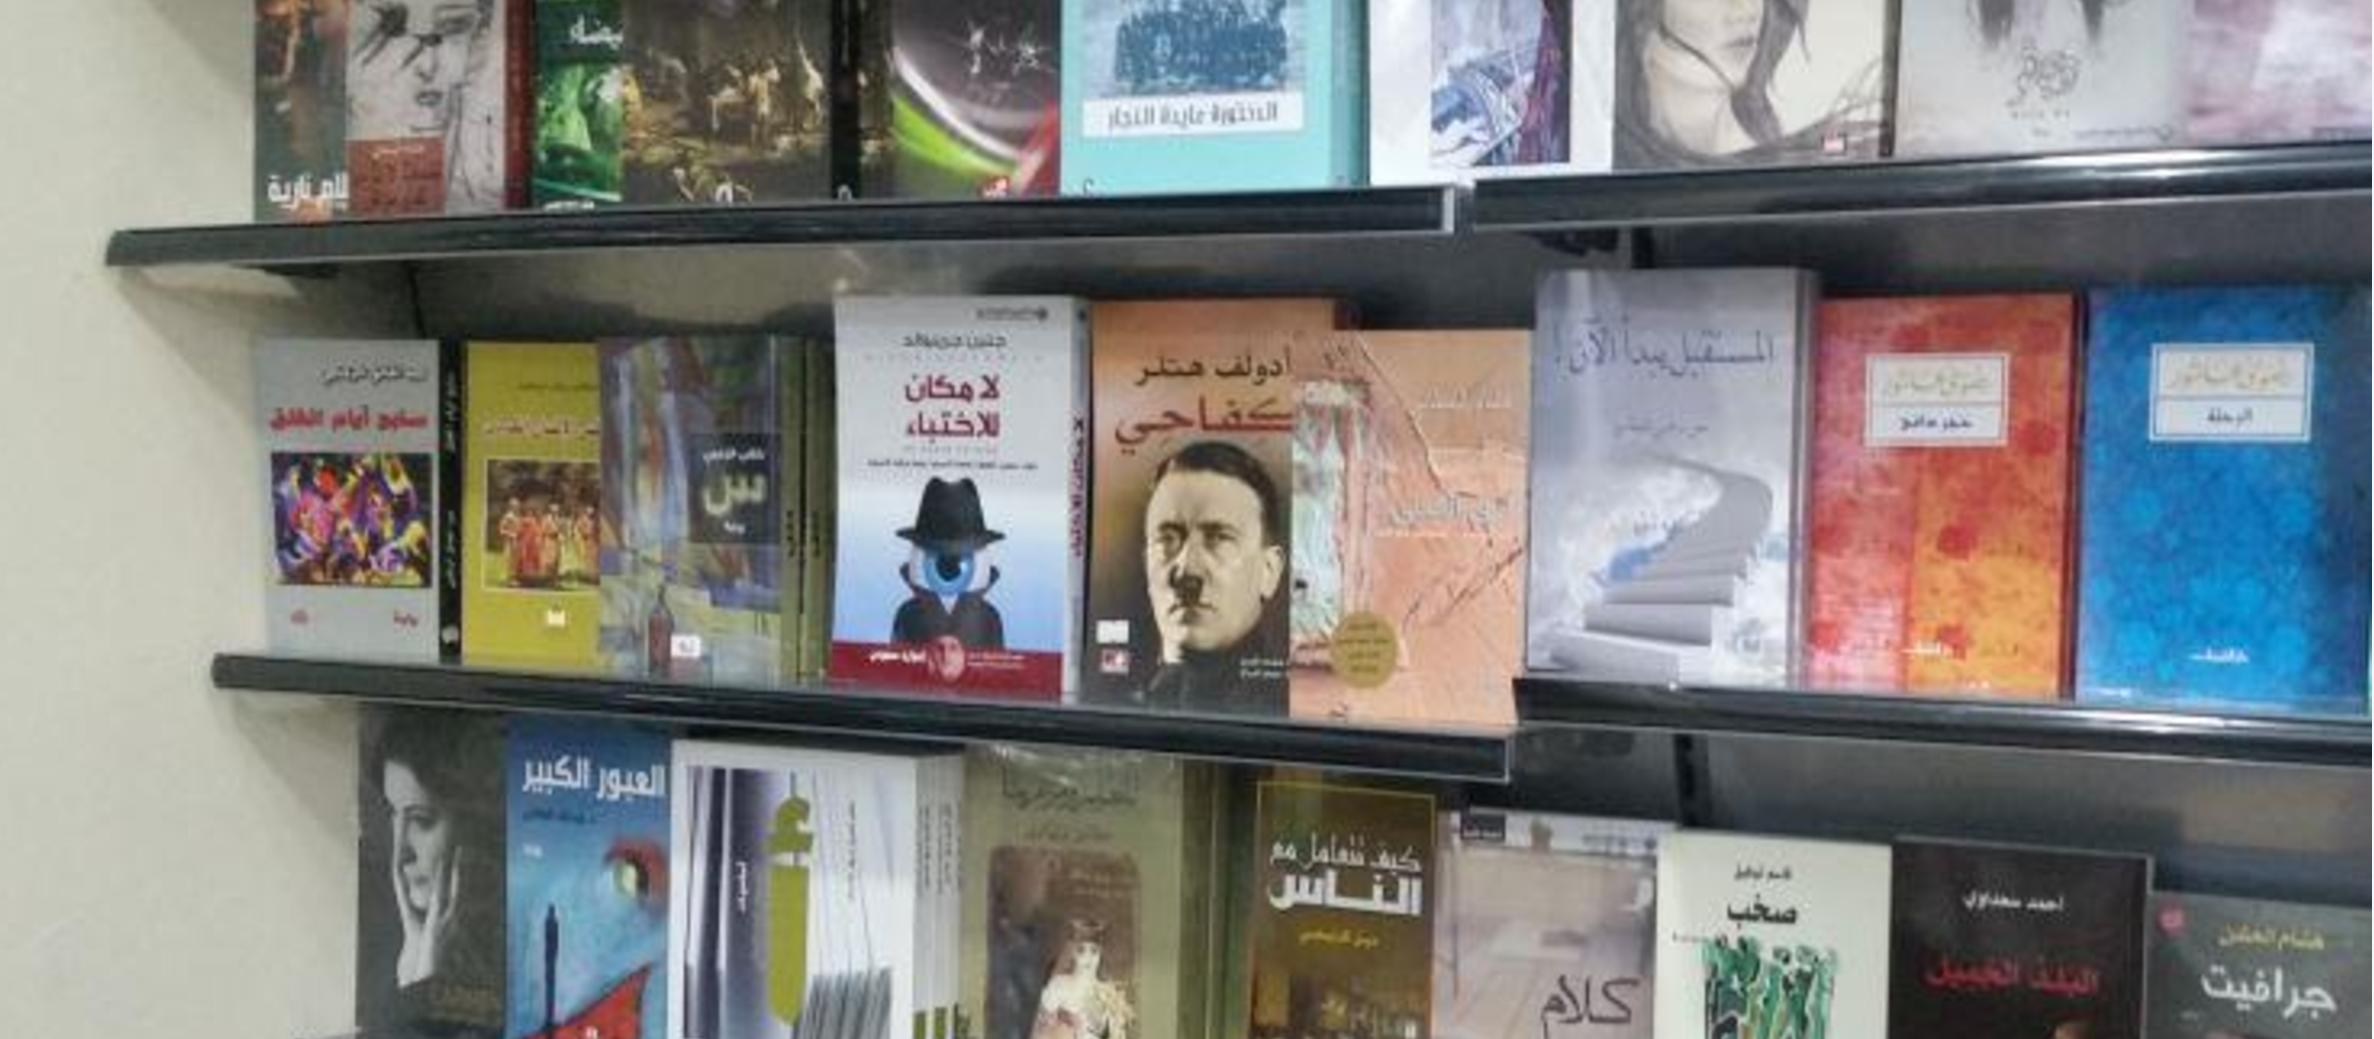 'Mein Kampf' for sale in British bookshop at Jordan airport